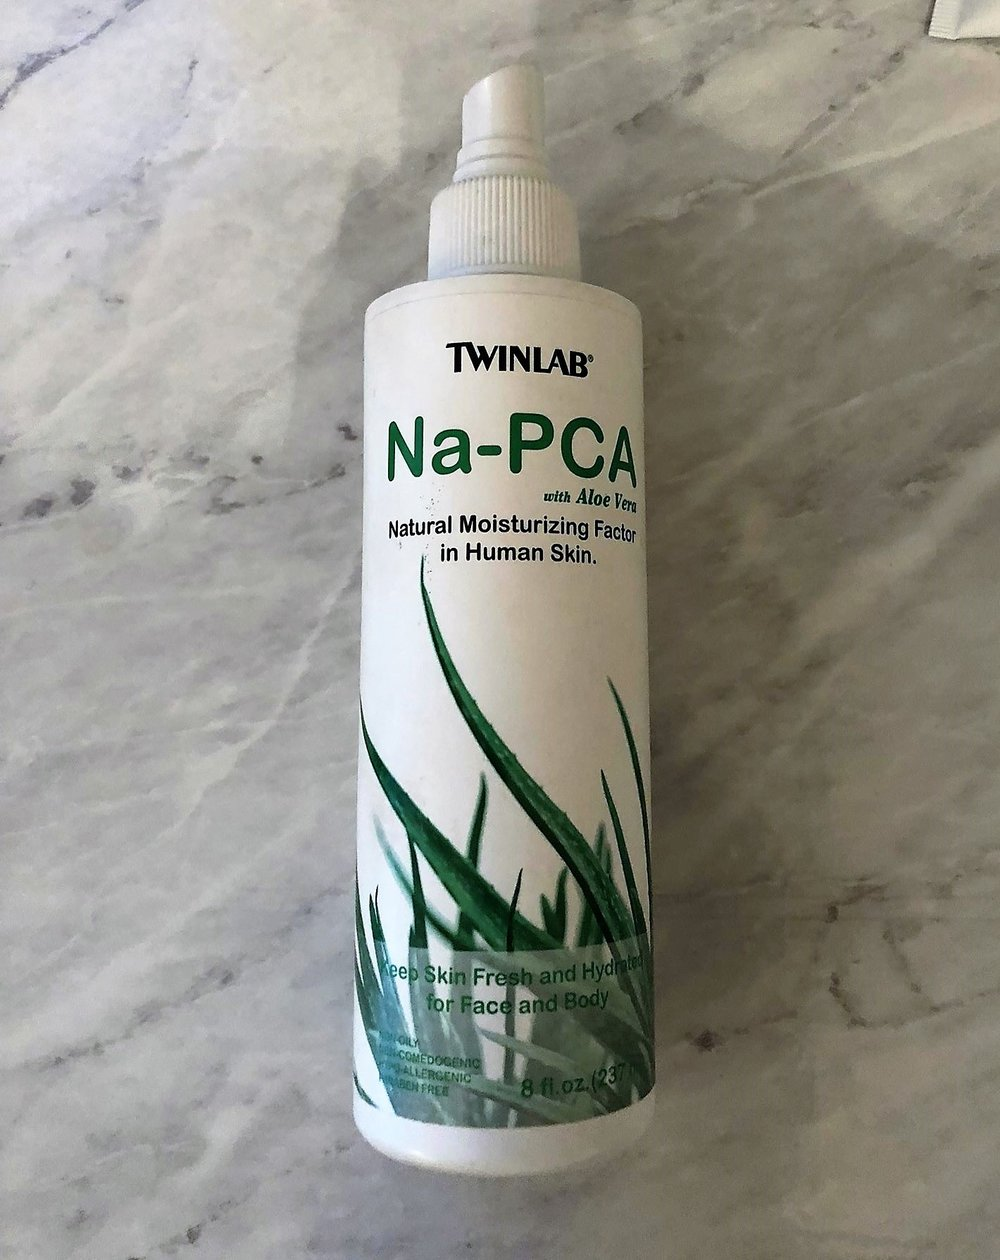 https://www.amazon.com/Twinlab-Na-Pca-Aloe-Vera-Pack/dp/B00K3IXQIM/ref=sr_1_12_s_it?s=beauty&ie=UTF8&qid=1527135743&sr=1-12&keywords=NaPCA